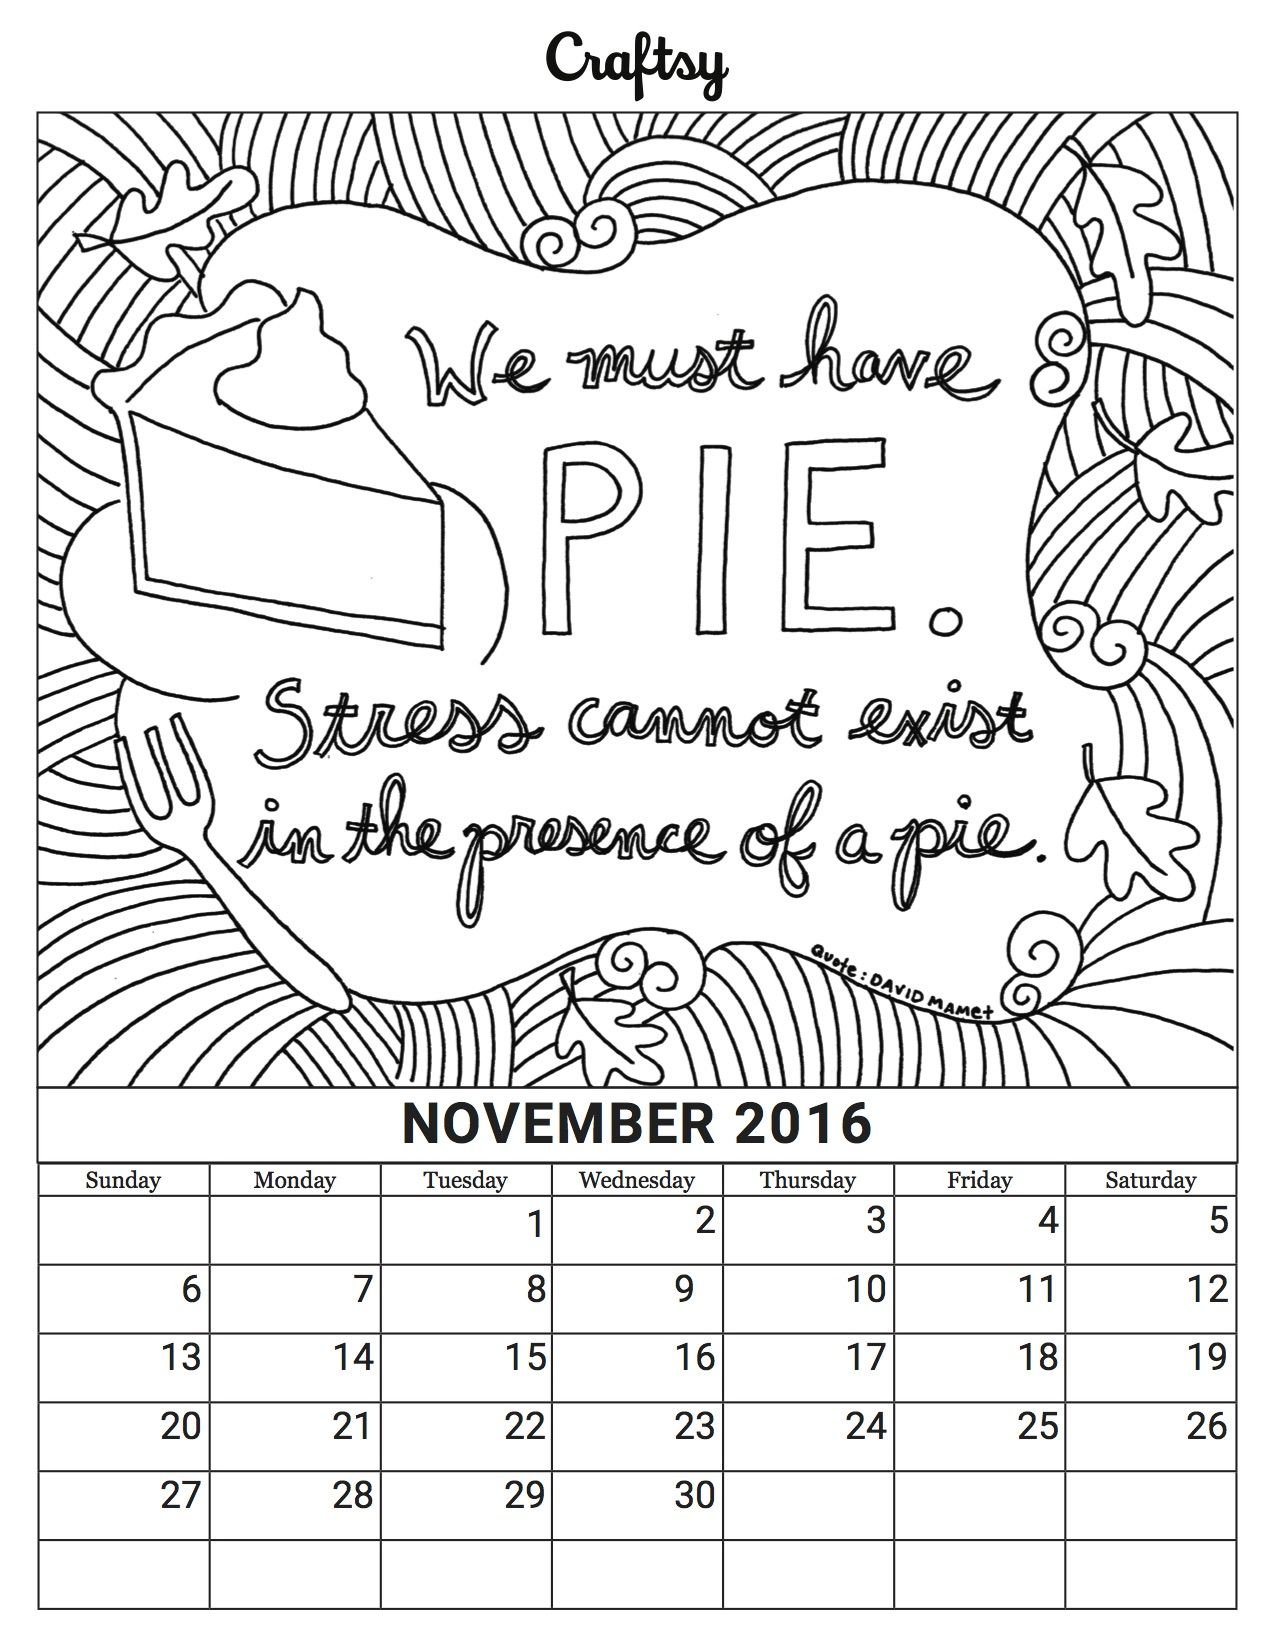 november coloring book calendar page - November Coloring Pages Free